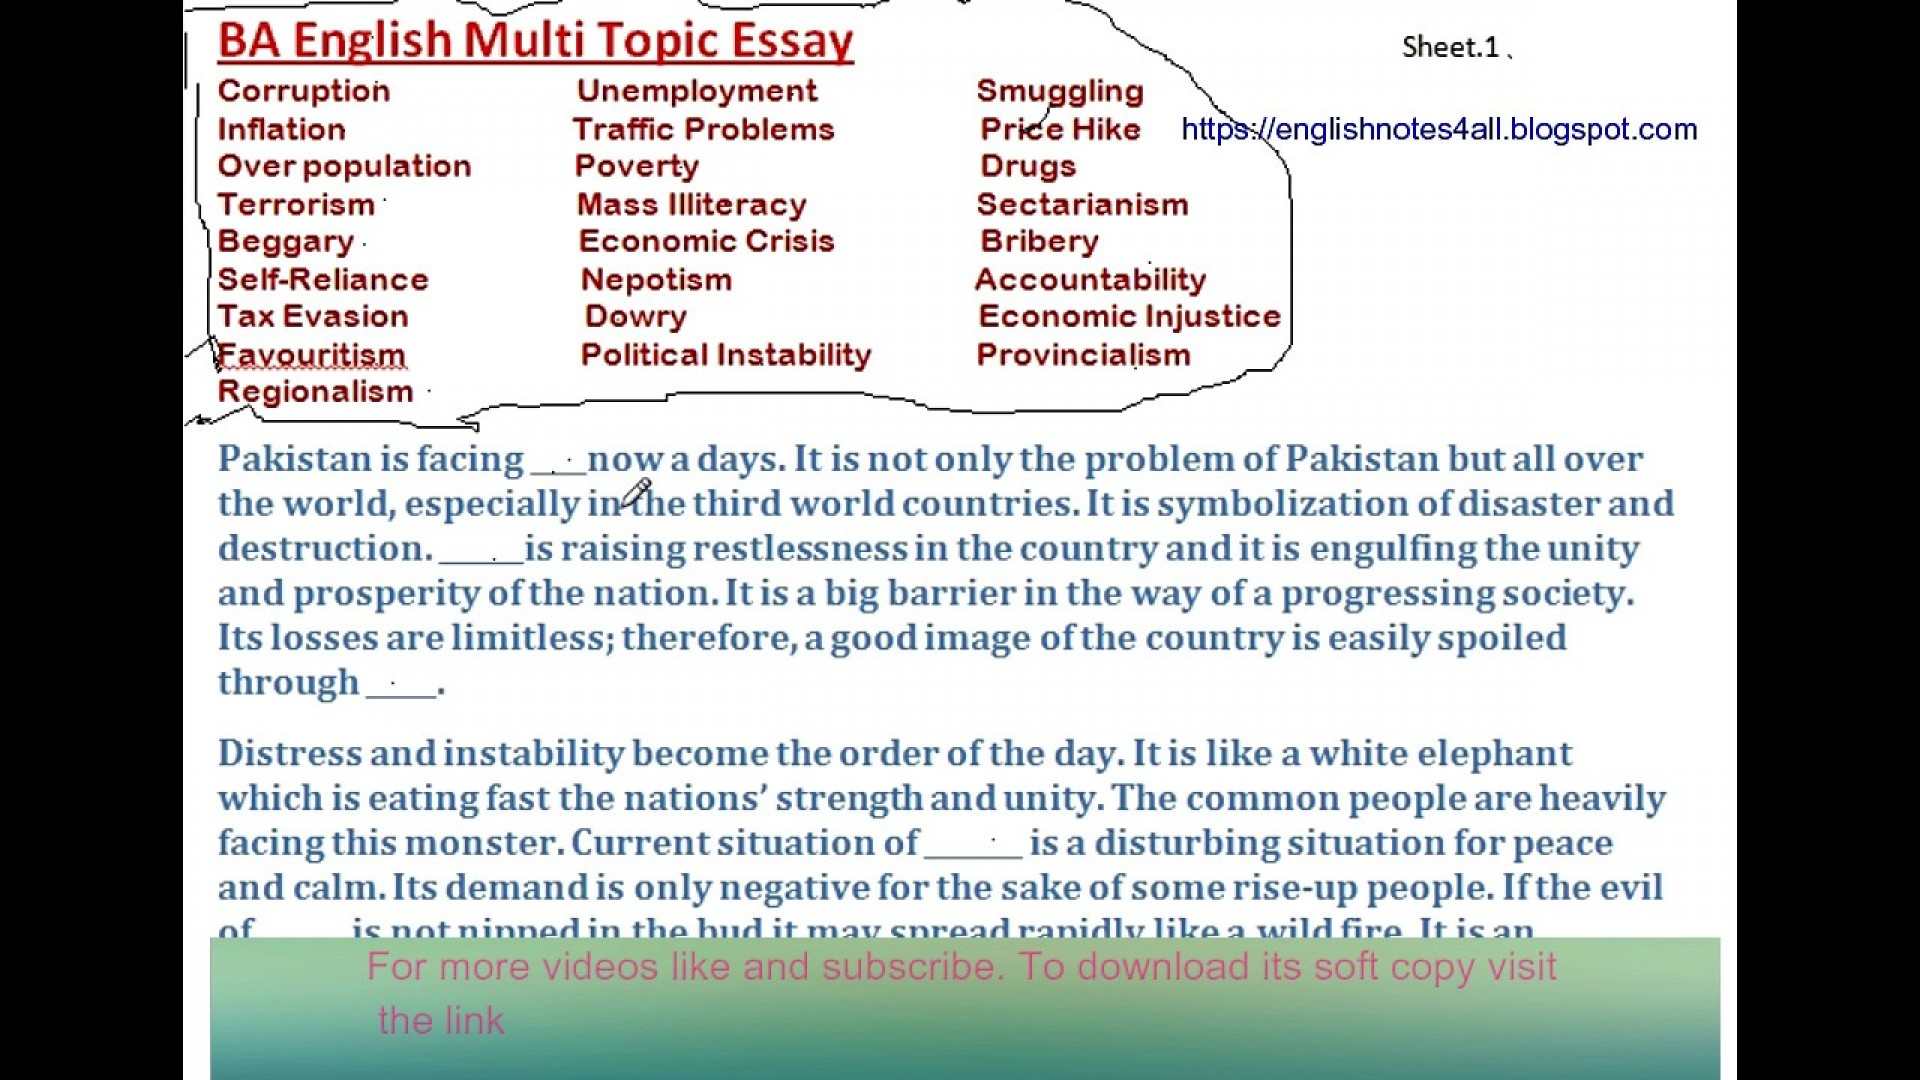 018 Maxresdefault Essay Example Tv Addiction For Beautiful Bsc 1920